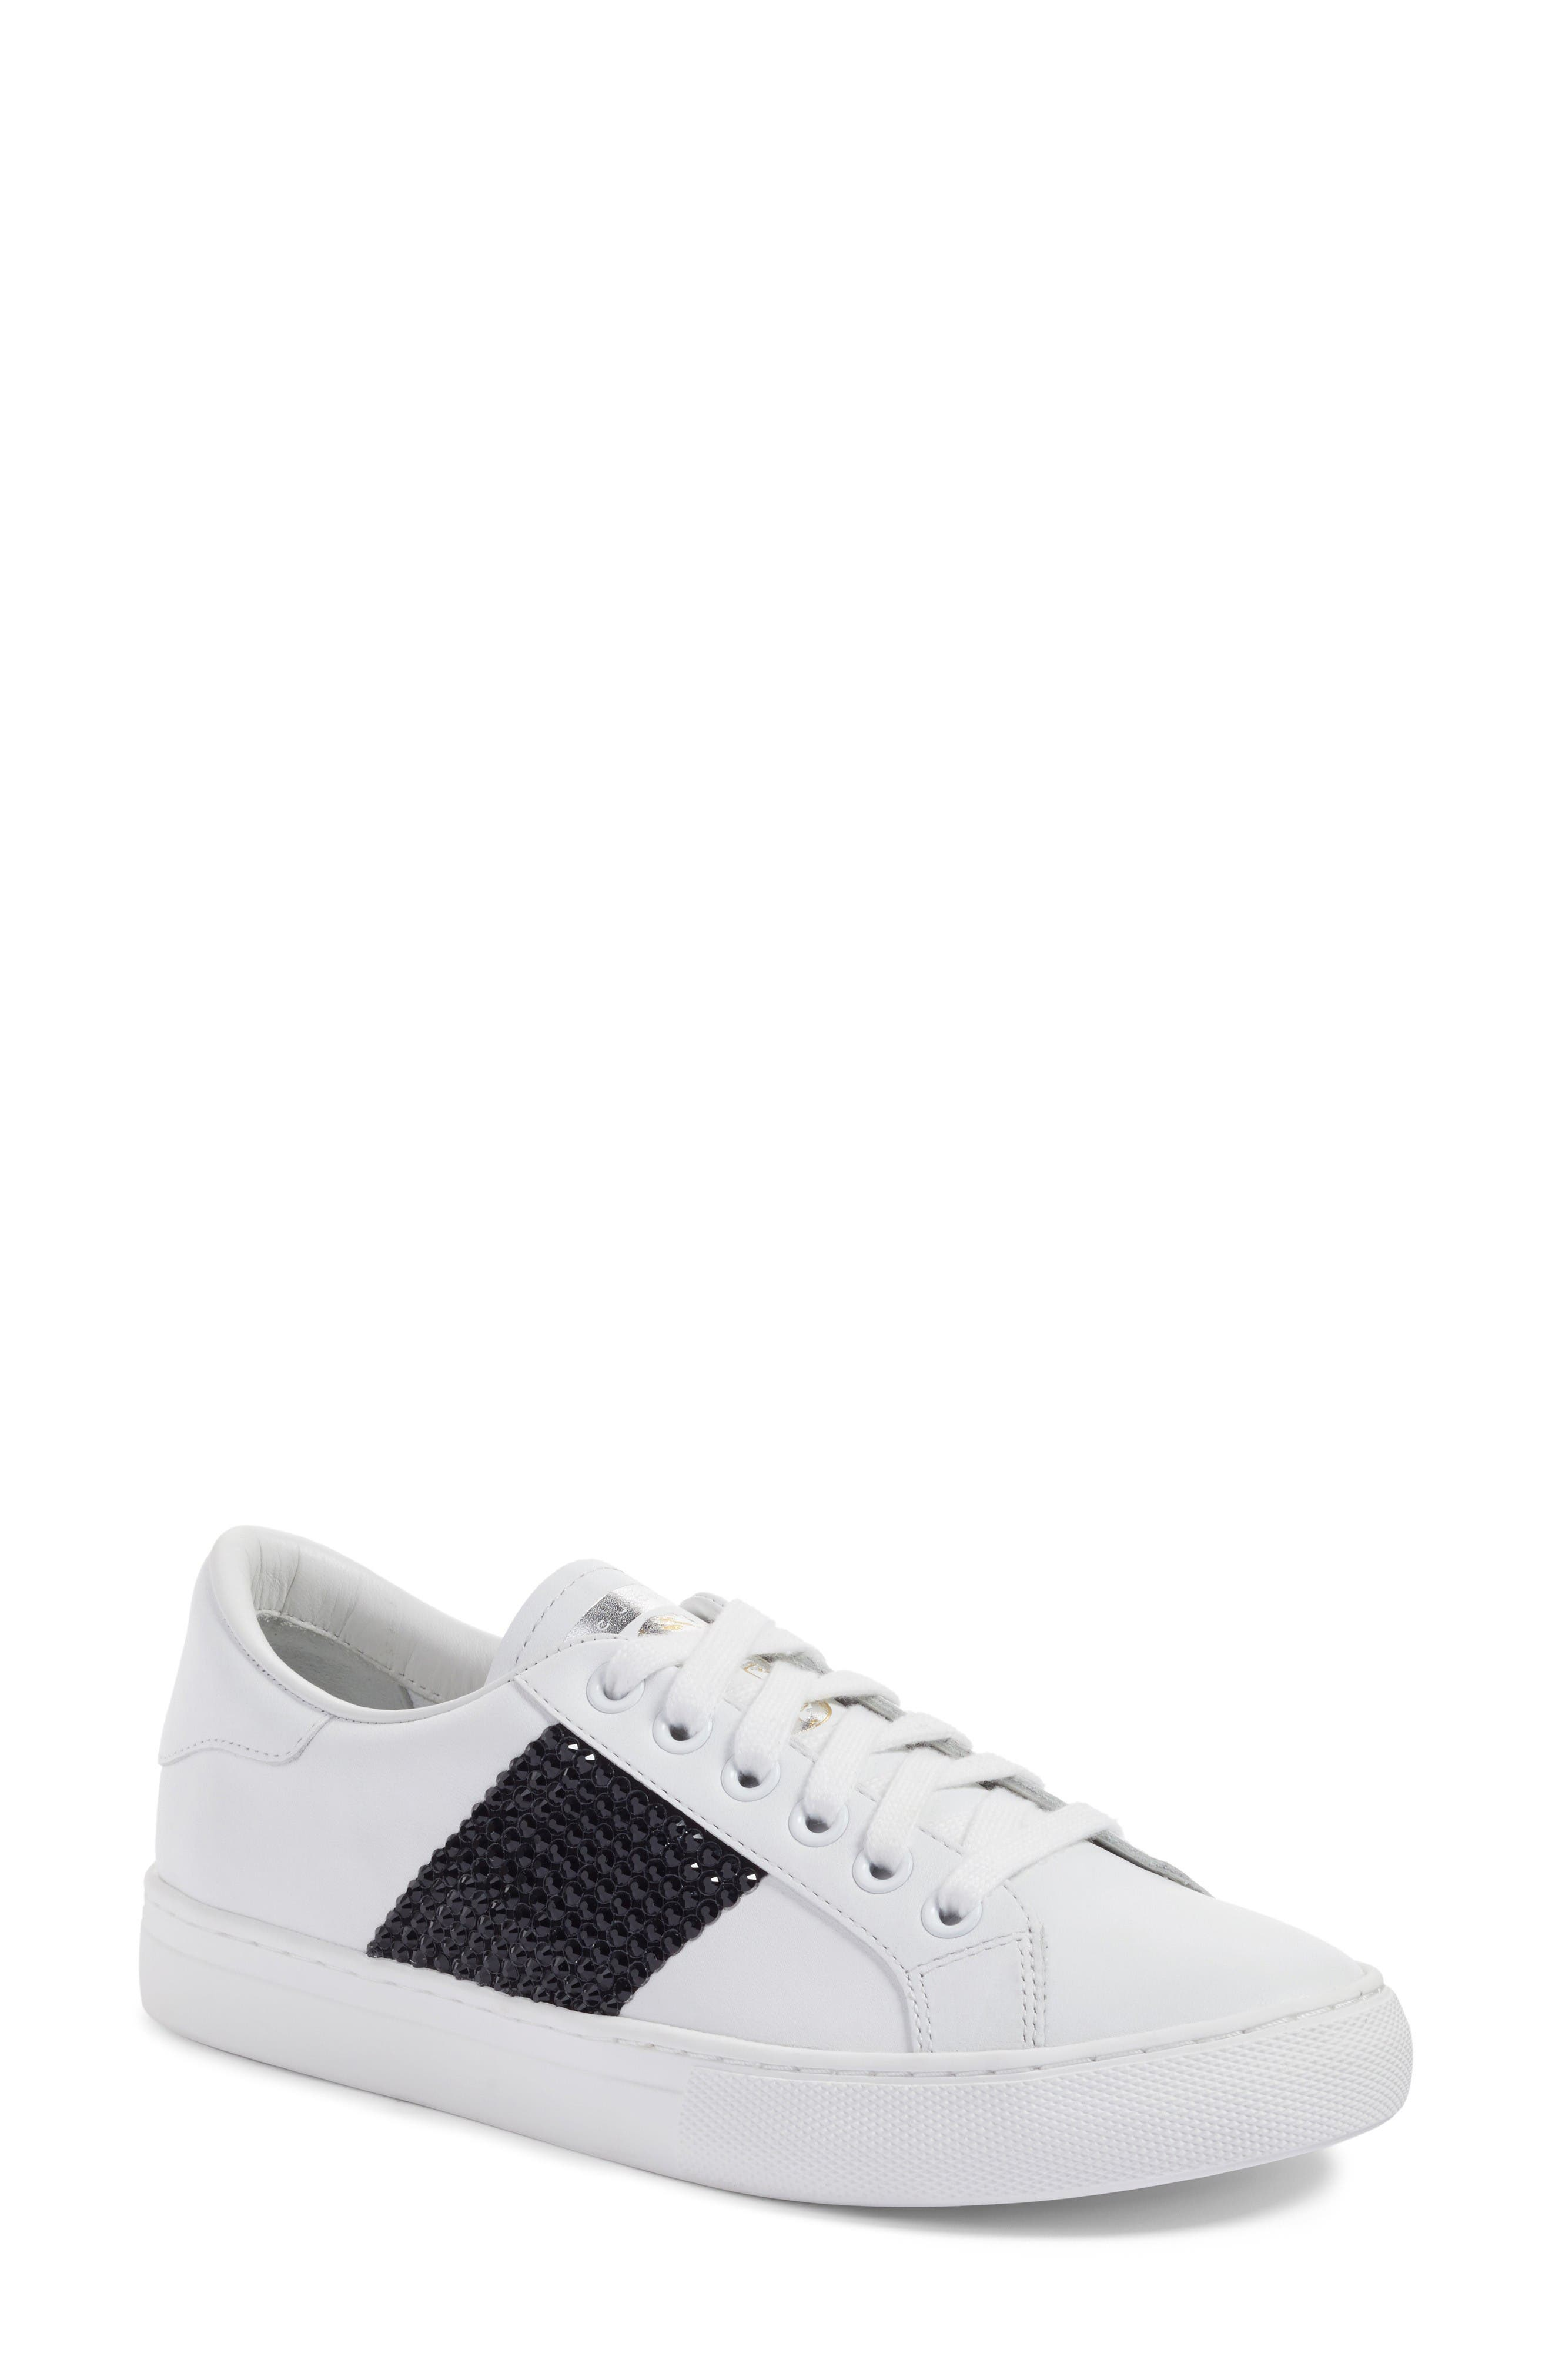 MARC JACOBS Empire Embellished Sneaker (Women)